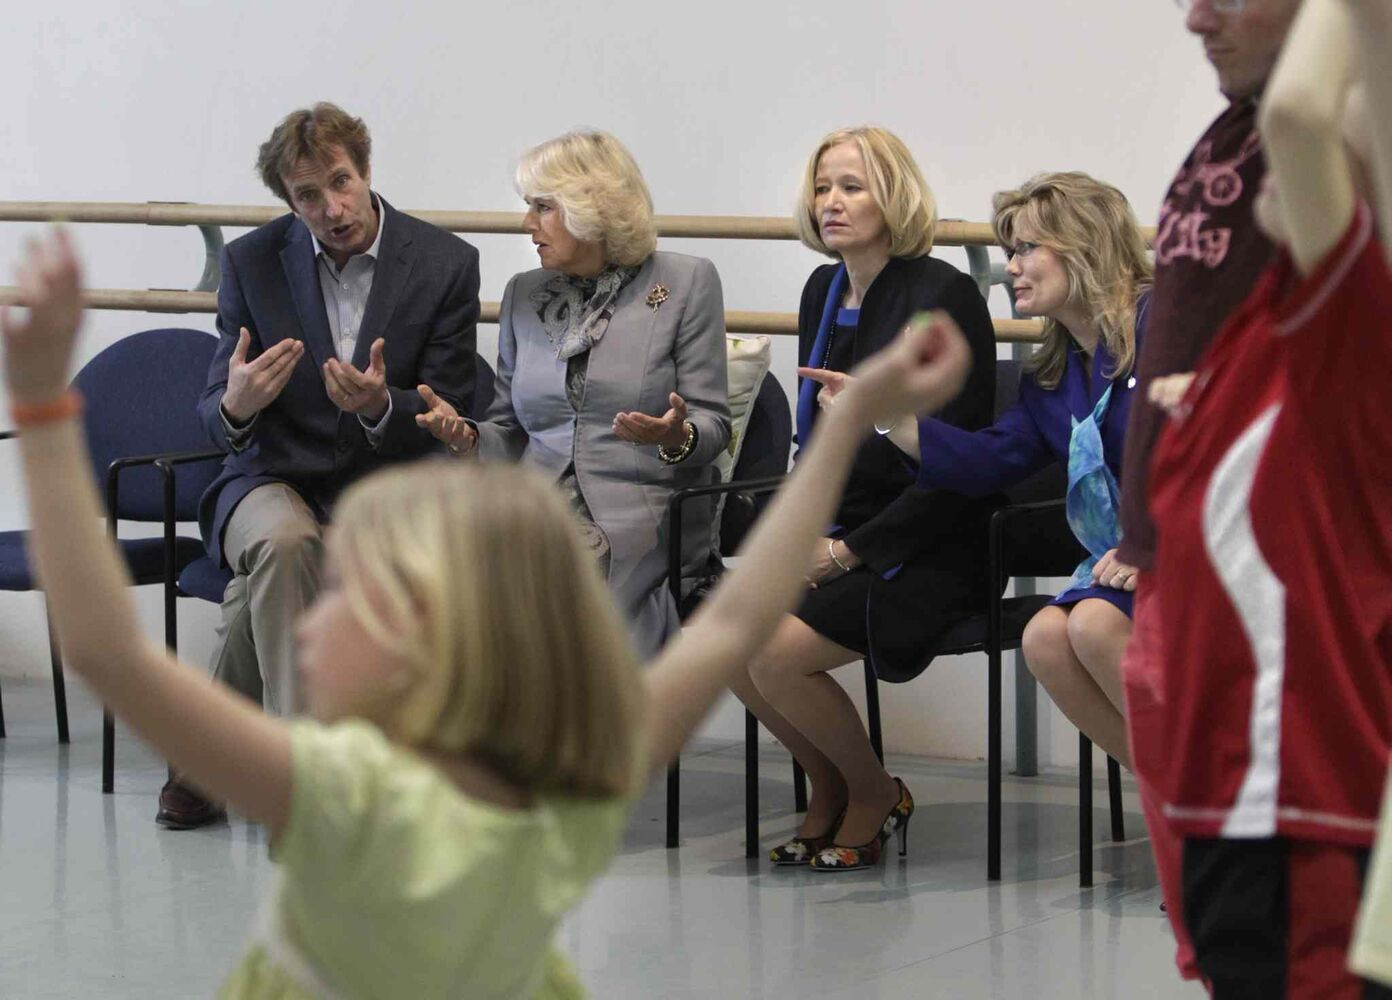 From left, Royal Winnipeg Ballet Artistic Director Andre Lewis, Camilla, Duchess of Cornwall, Laureen Harper and Shelly Glover, MP watch an RWB outreach movement workshop with children from Art City during their tour of Canada's Royal Winnipeg Ballet building on Wednesday.